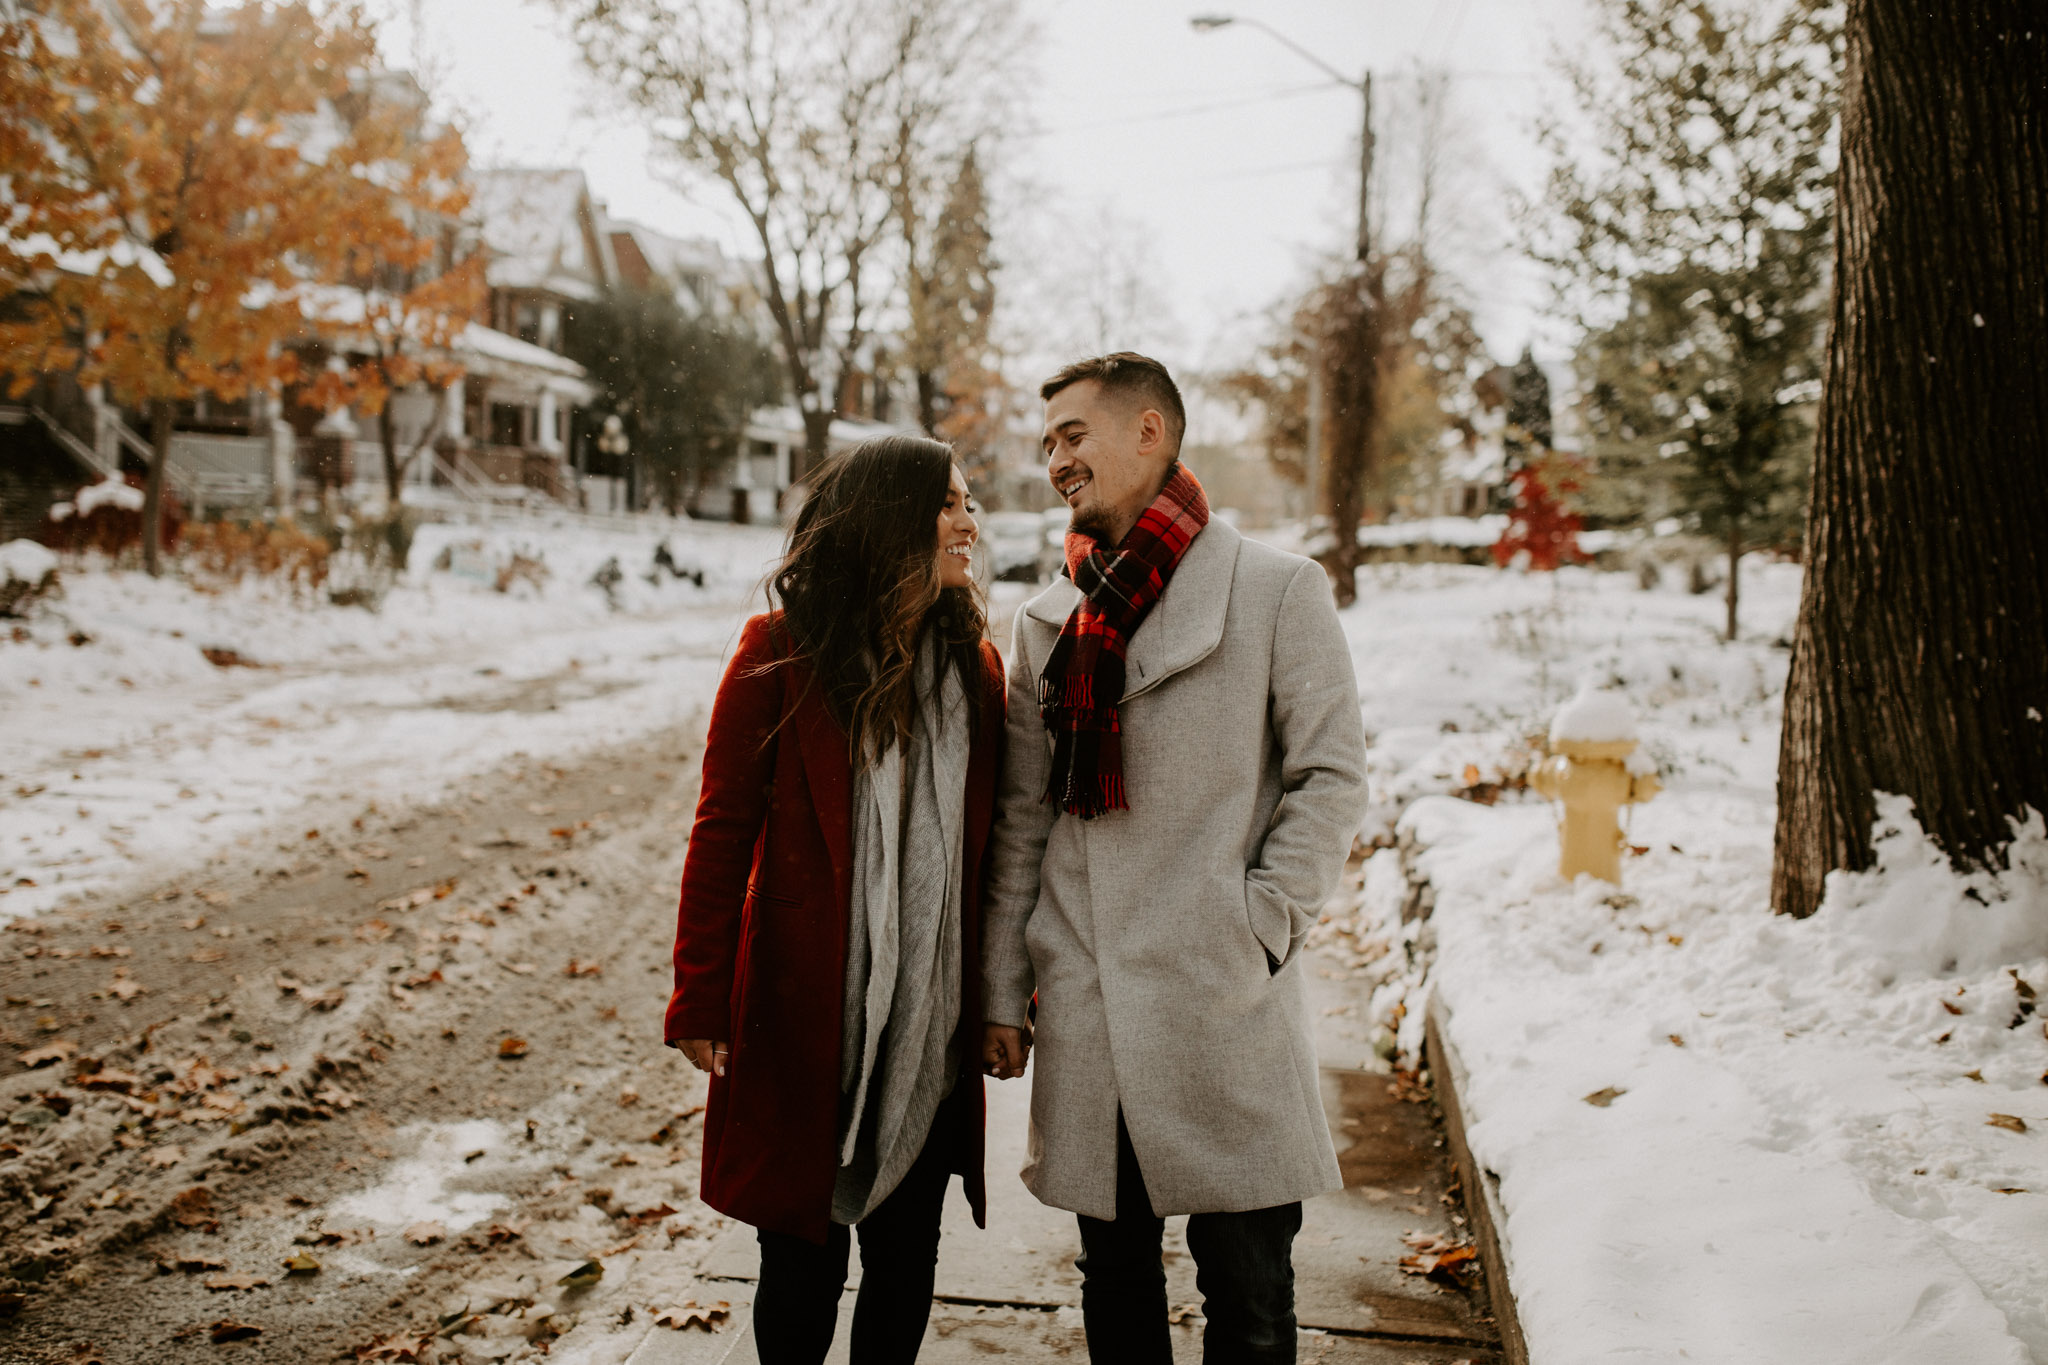 Winter Engagement in Toronto - woman in red coat and man in grey coat with red plaid scarf smile on snowy street